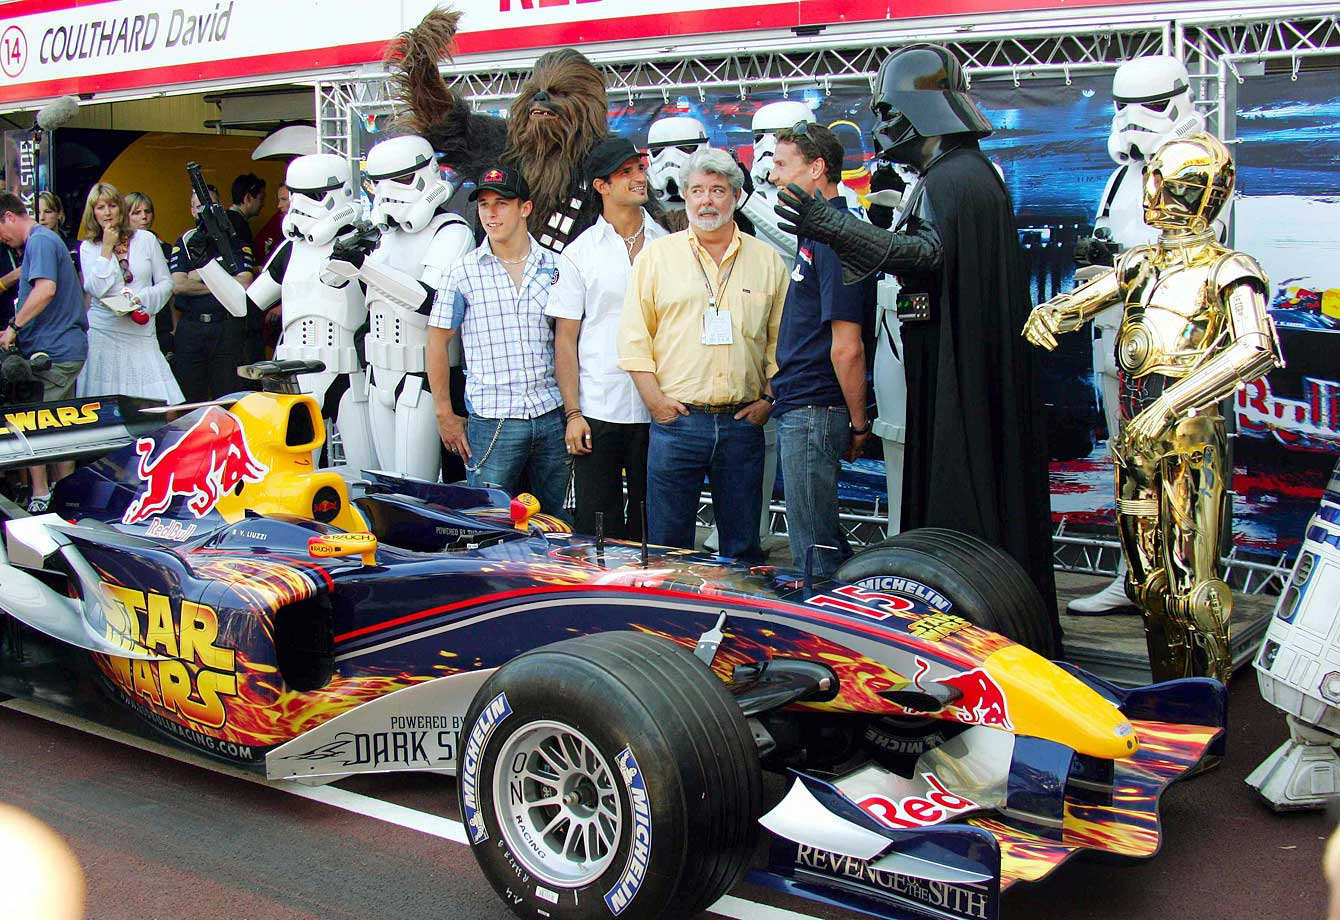 George Lucas and Red Bull Formula One driver David Coulthard, standing between Lucas and Darth Vader, pose behind the Red Bull race car on May 20, 2005 in Monte Carlo, Monaco.